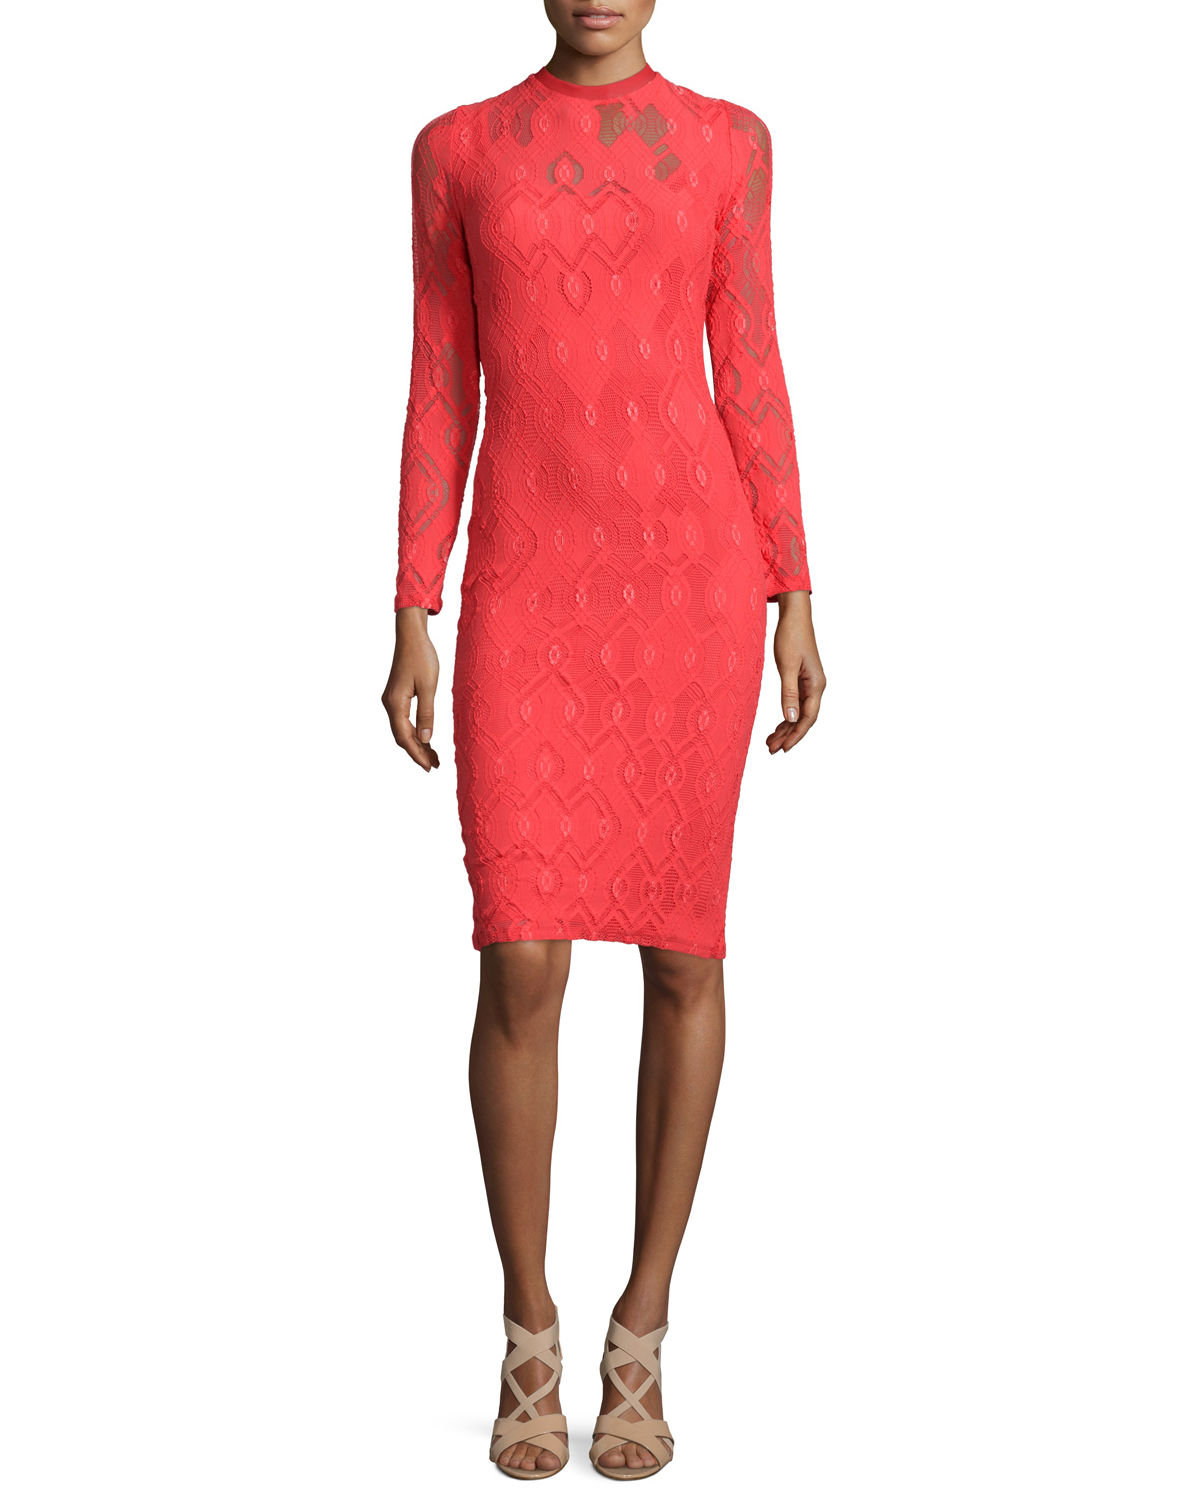 Long-Sleeve Crochet Sheath Dress